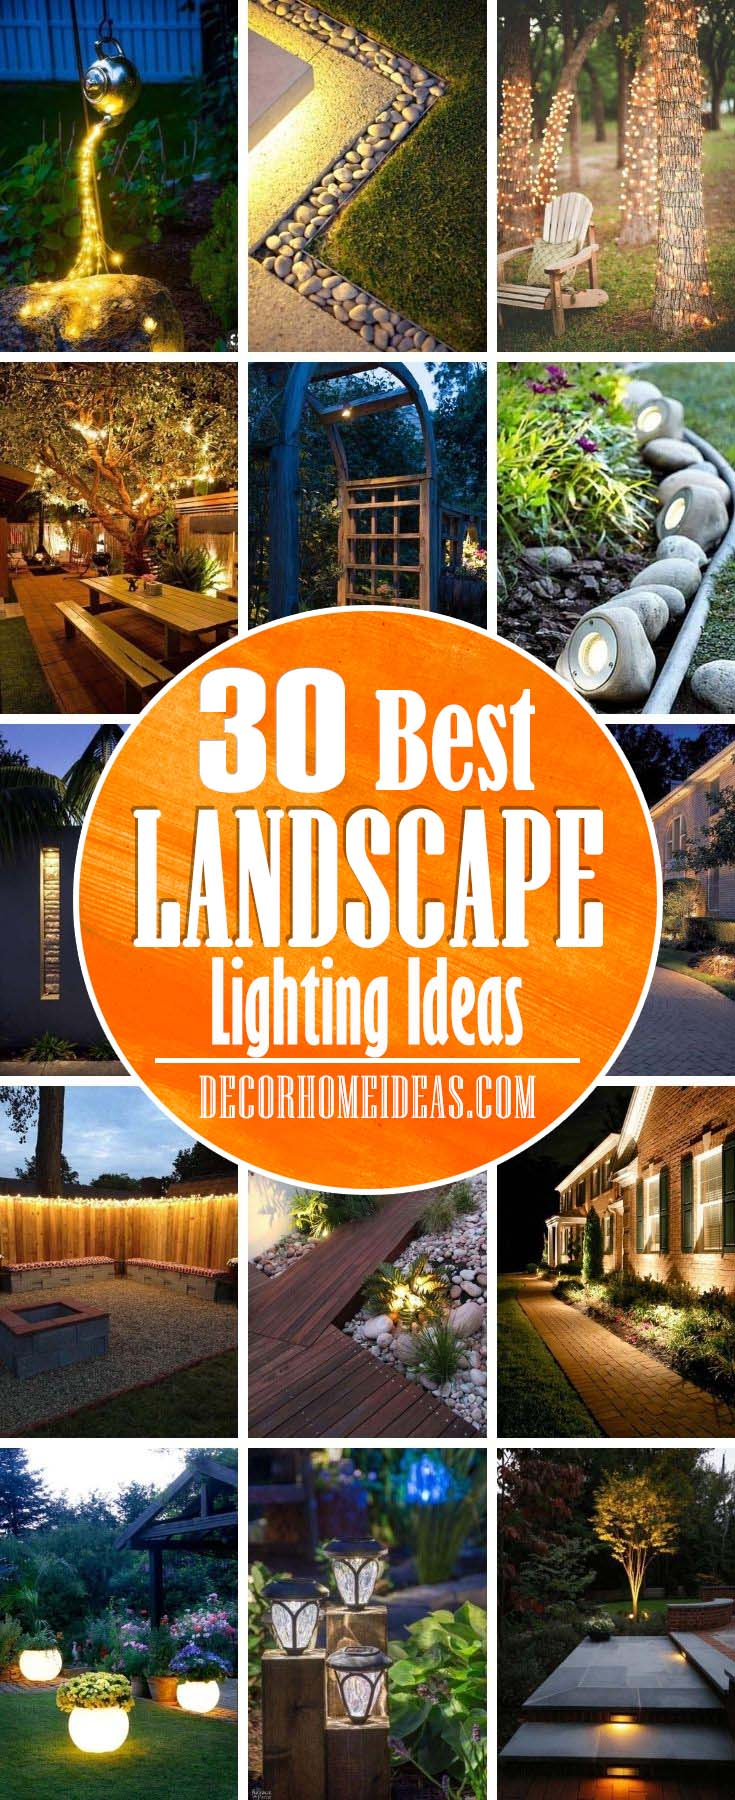 Best Landscaping Lighting Ideas. Add more light and texture to your backyard with these creative landscape lighting ideas. Best ideas and designs with photos. #decorhomeideas